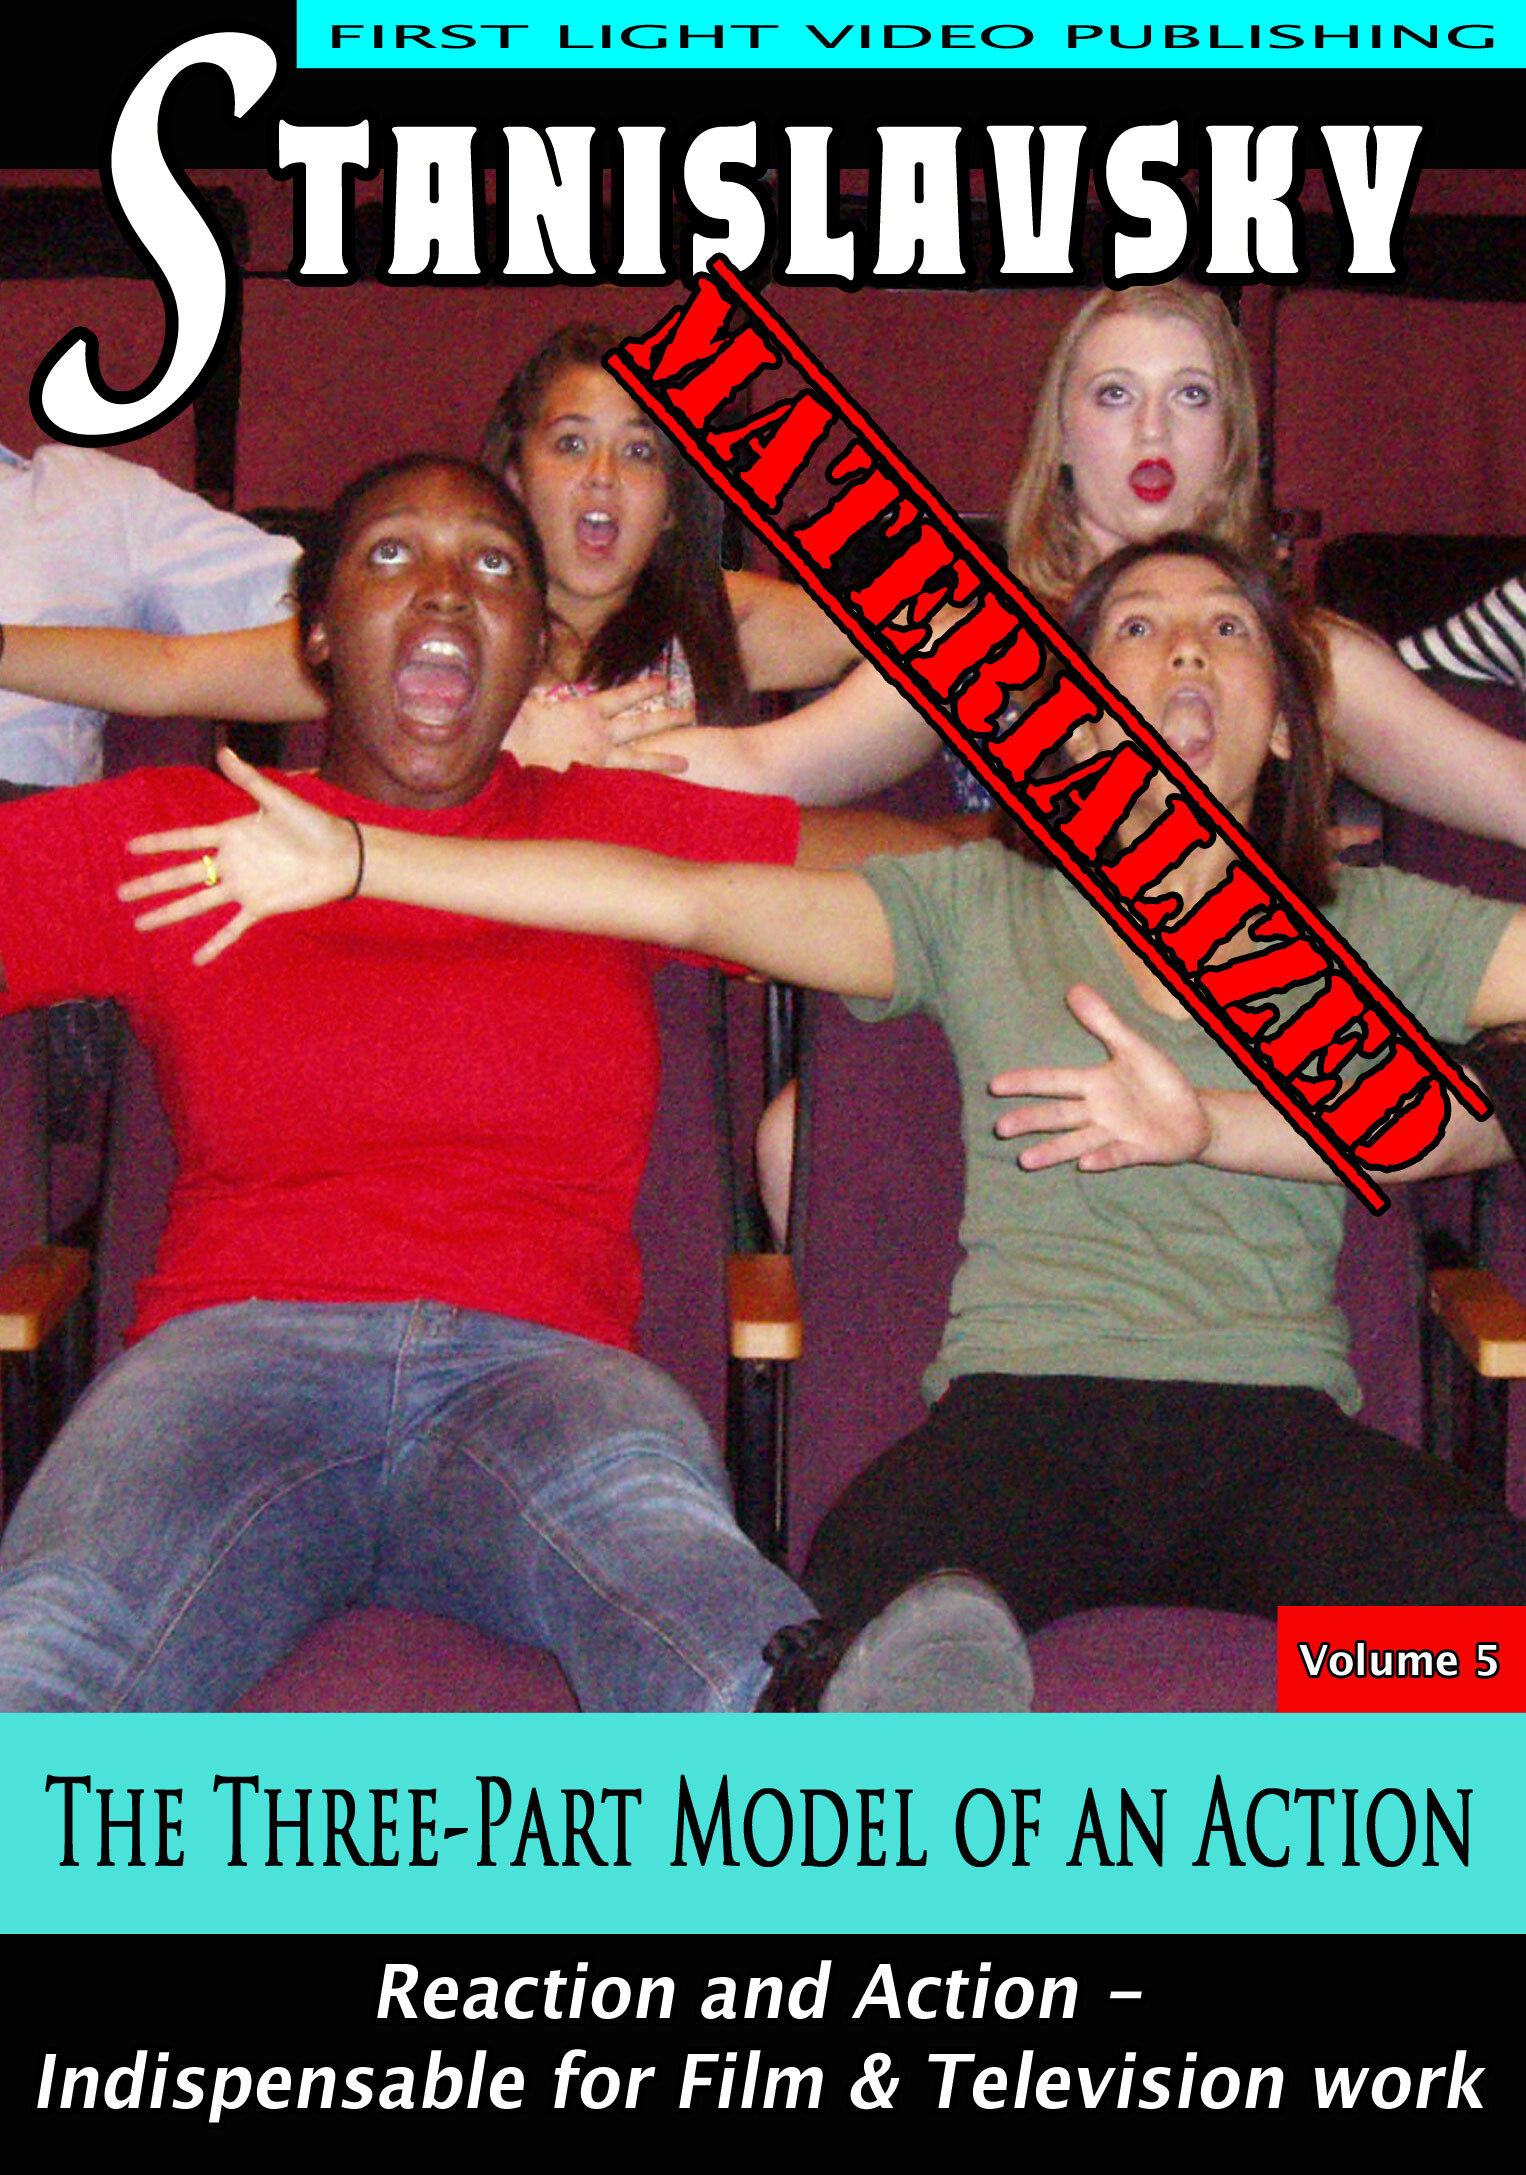 F2693 - The Three-Part Model of an Action